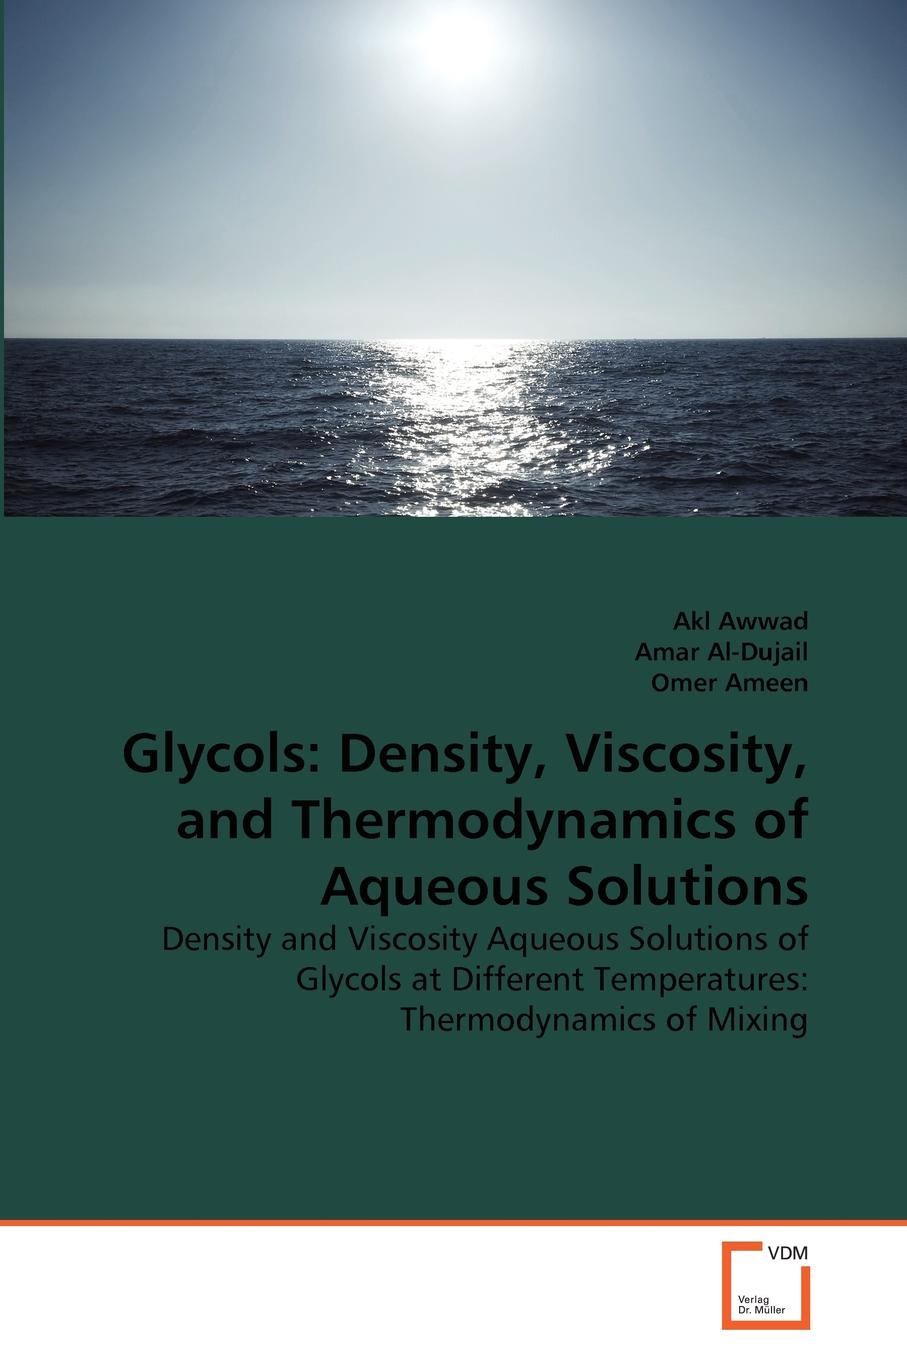 Akl Awwad, Amar Al-Dujail, Omer Ameen Glycols. Density, Viscosity, and Thermodynamics of Aqueous Solutions yogesh sharma c a guide to the economic removal of metals from aqueous solutions